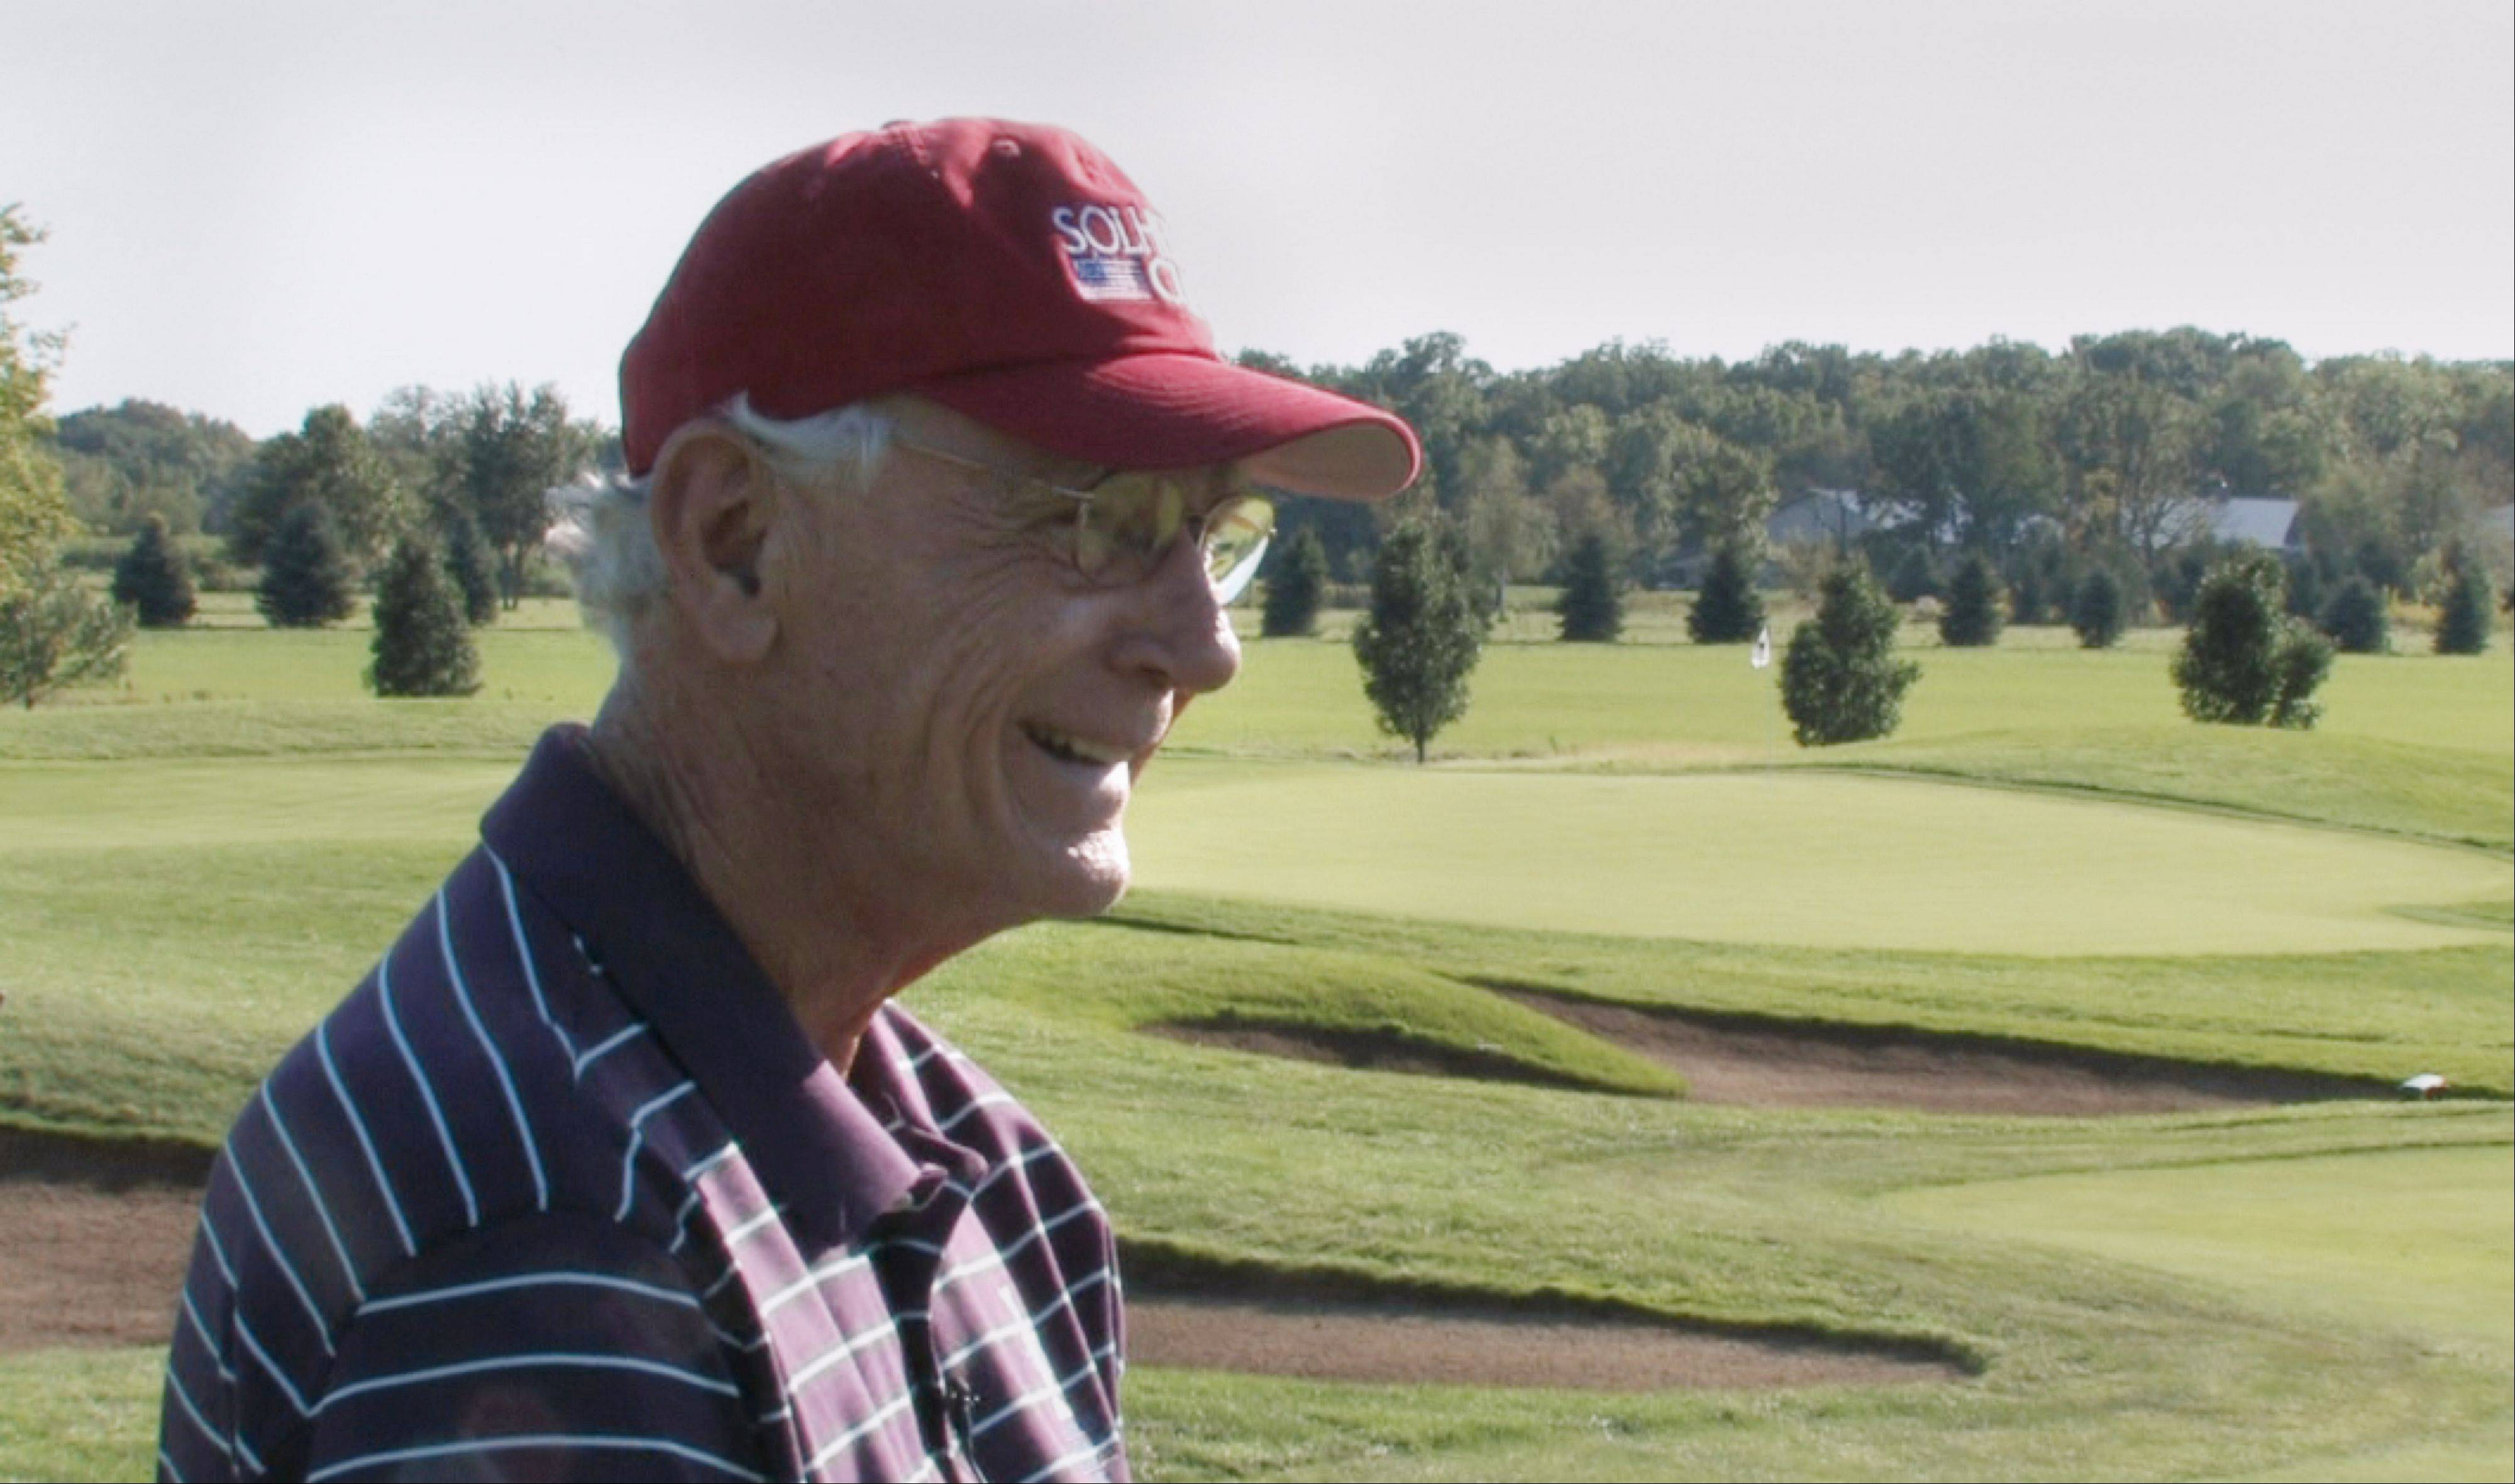 Rich Harvest Farms owner Jerry Rich is working hard to promote the International Crown golf event coming to his course in 2016, and working to see that it comes back often.